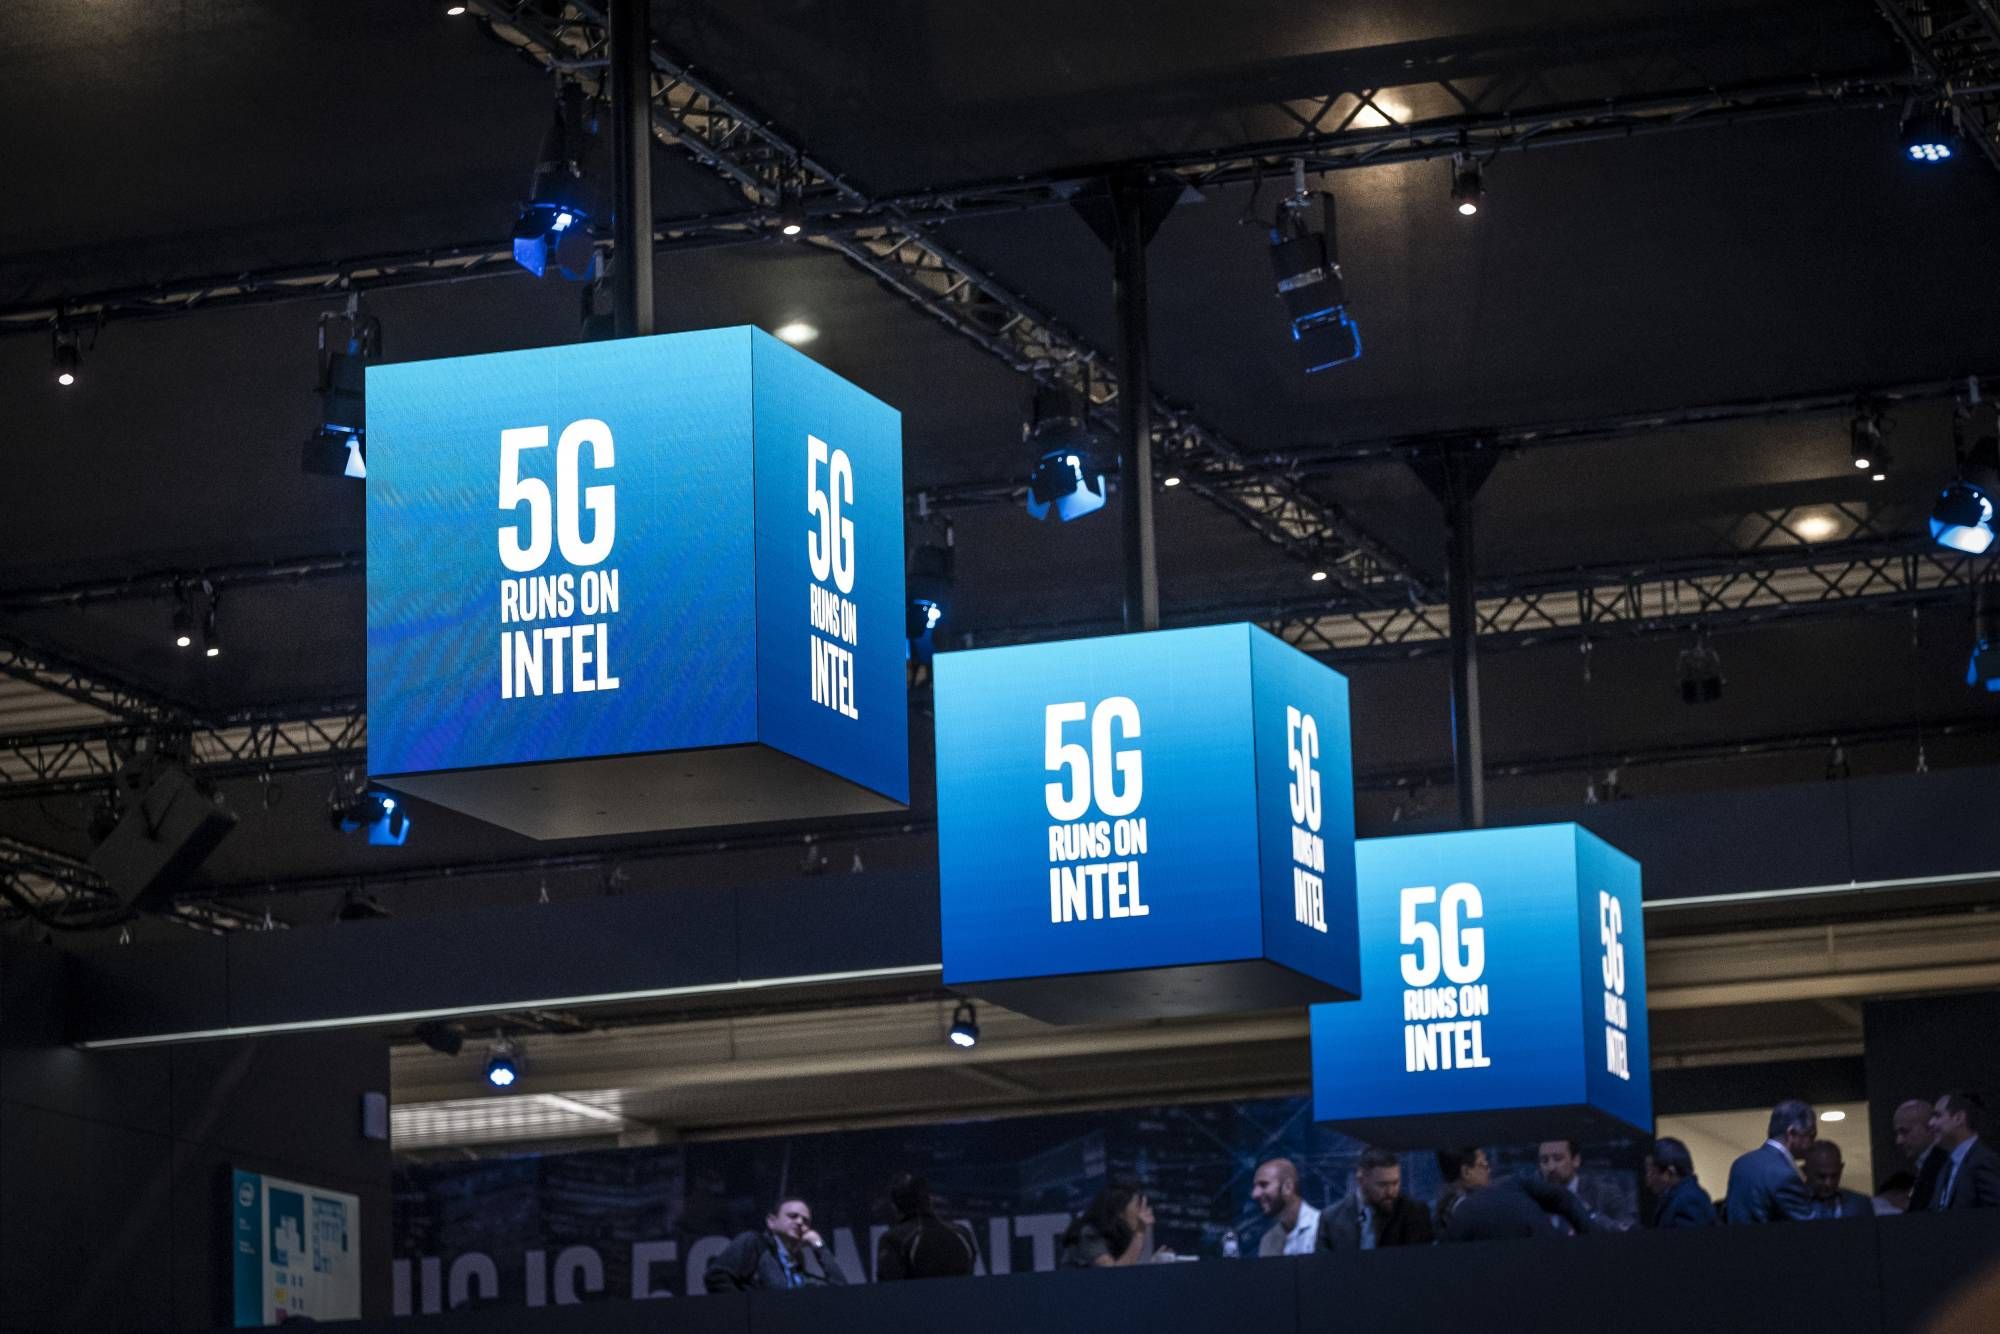 The 5G logo of Intel is seen during the MWC2019.The MWC2019